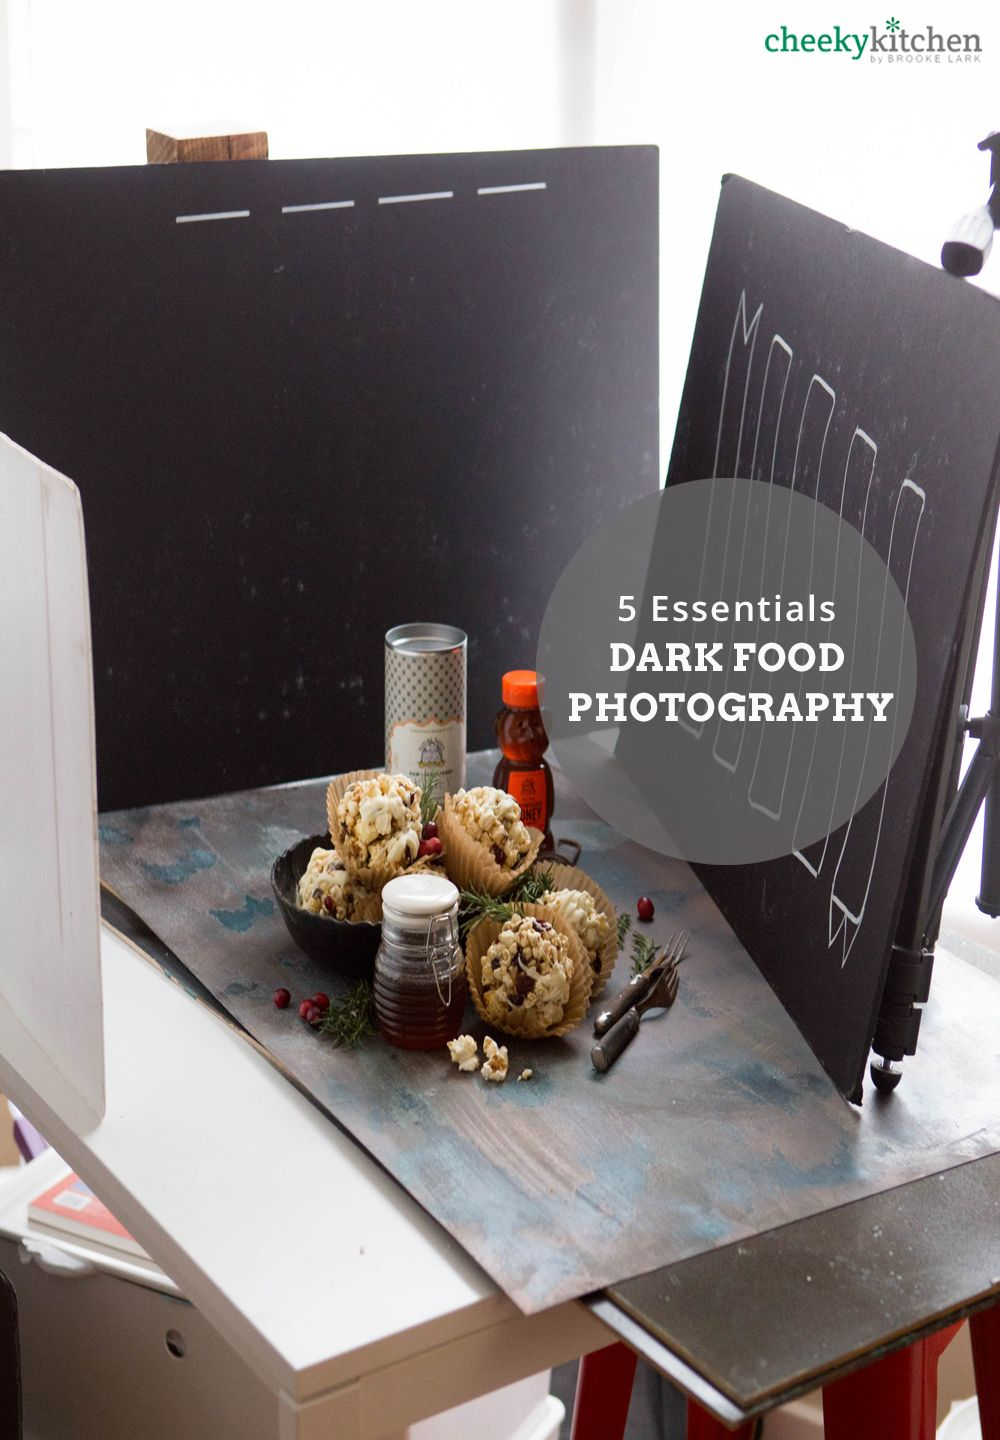 I Need Ideas For Decorating My Living Room: 5 Essentials For Dark Food Photography